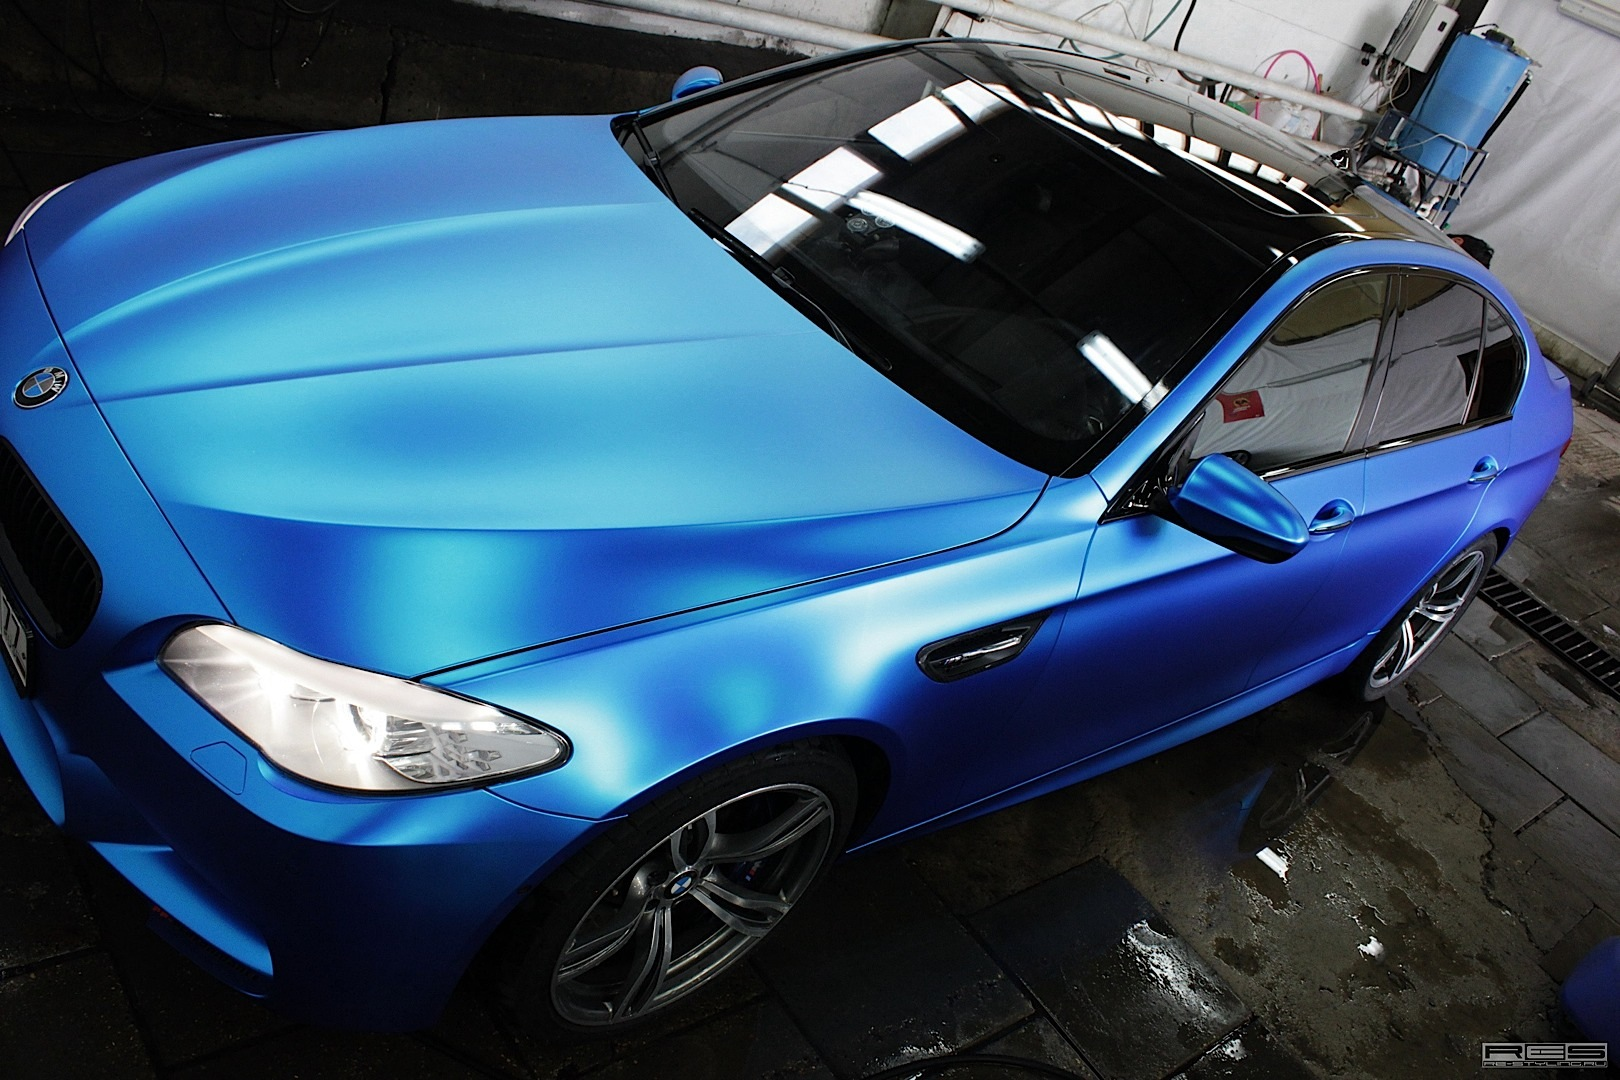 f10-bmw-m5-in-blue-satin-chrome-photo-gallery_7